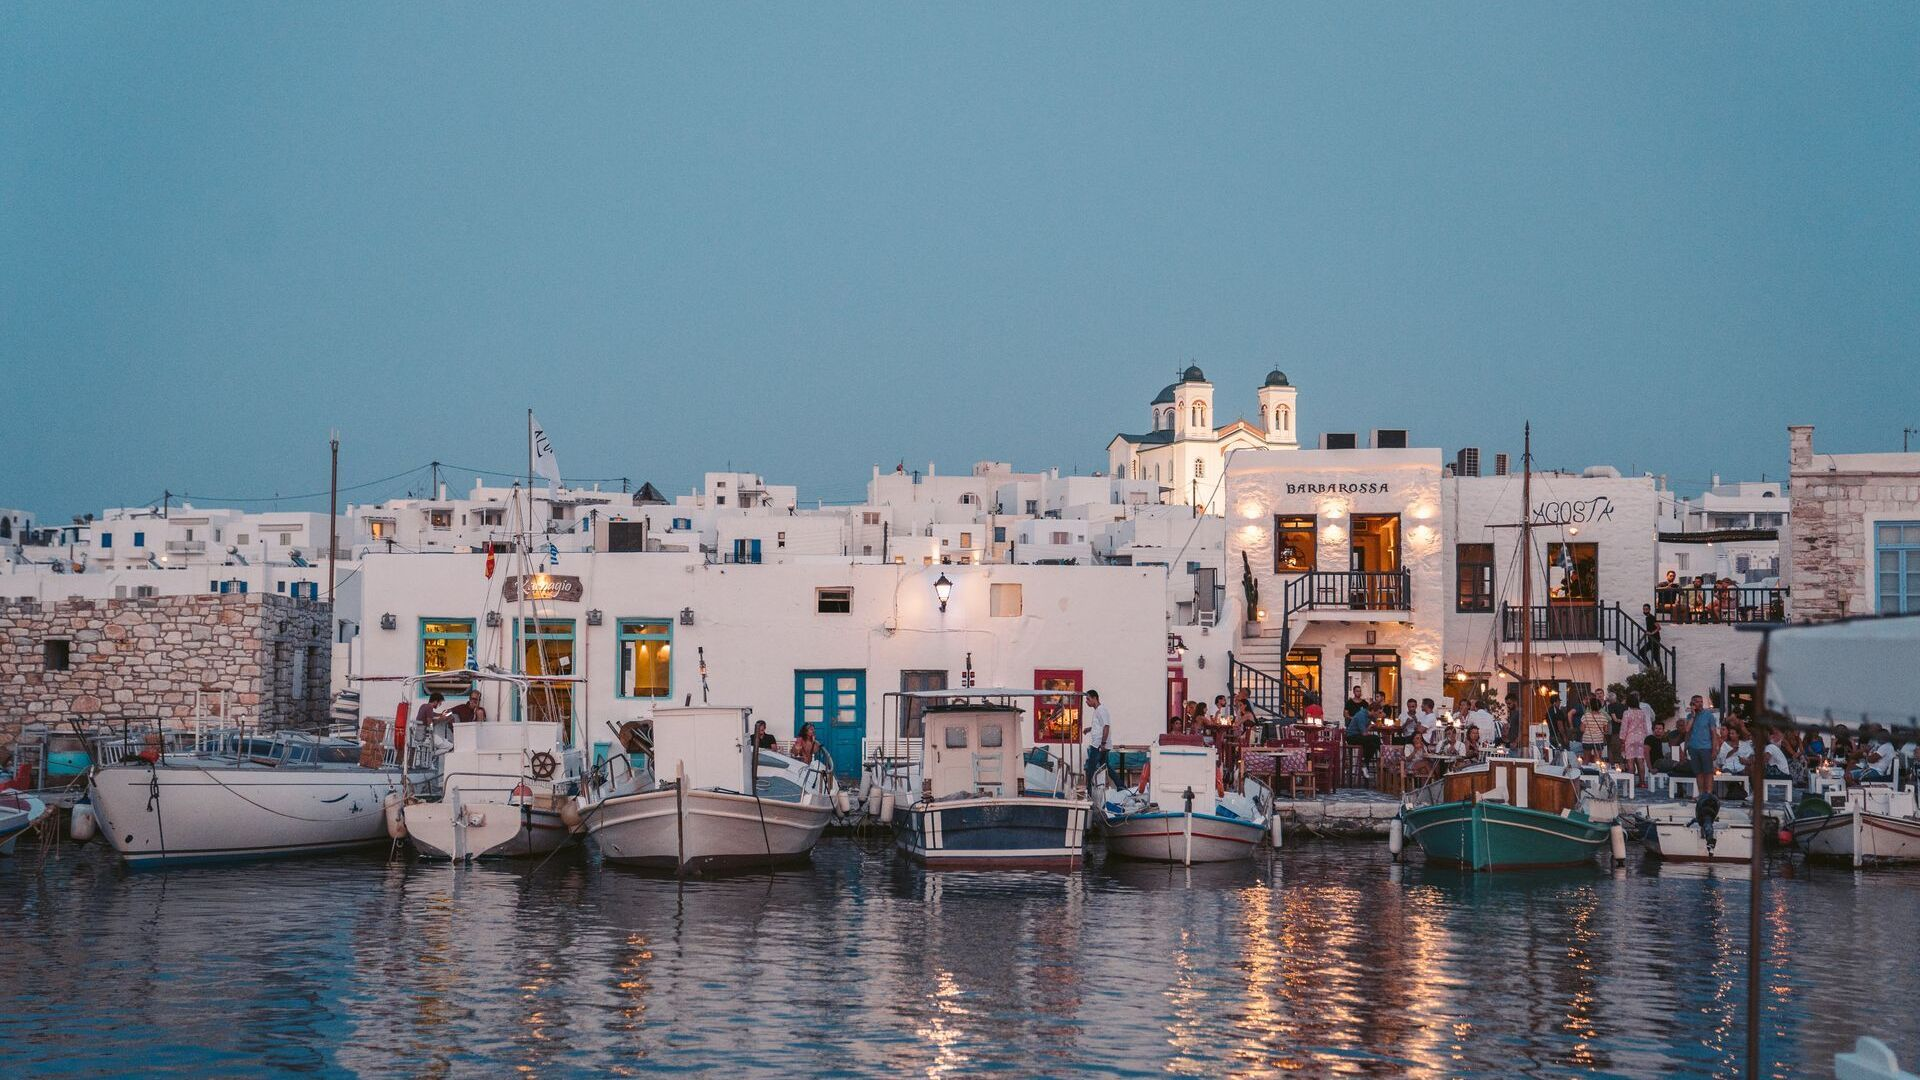 Right in the heart of the Cyclades, Paros is an Aegean island famous for its great beaches, watersports and the vibe of its main town.